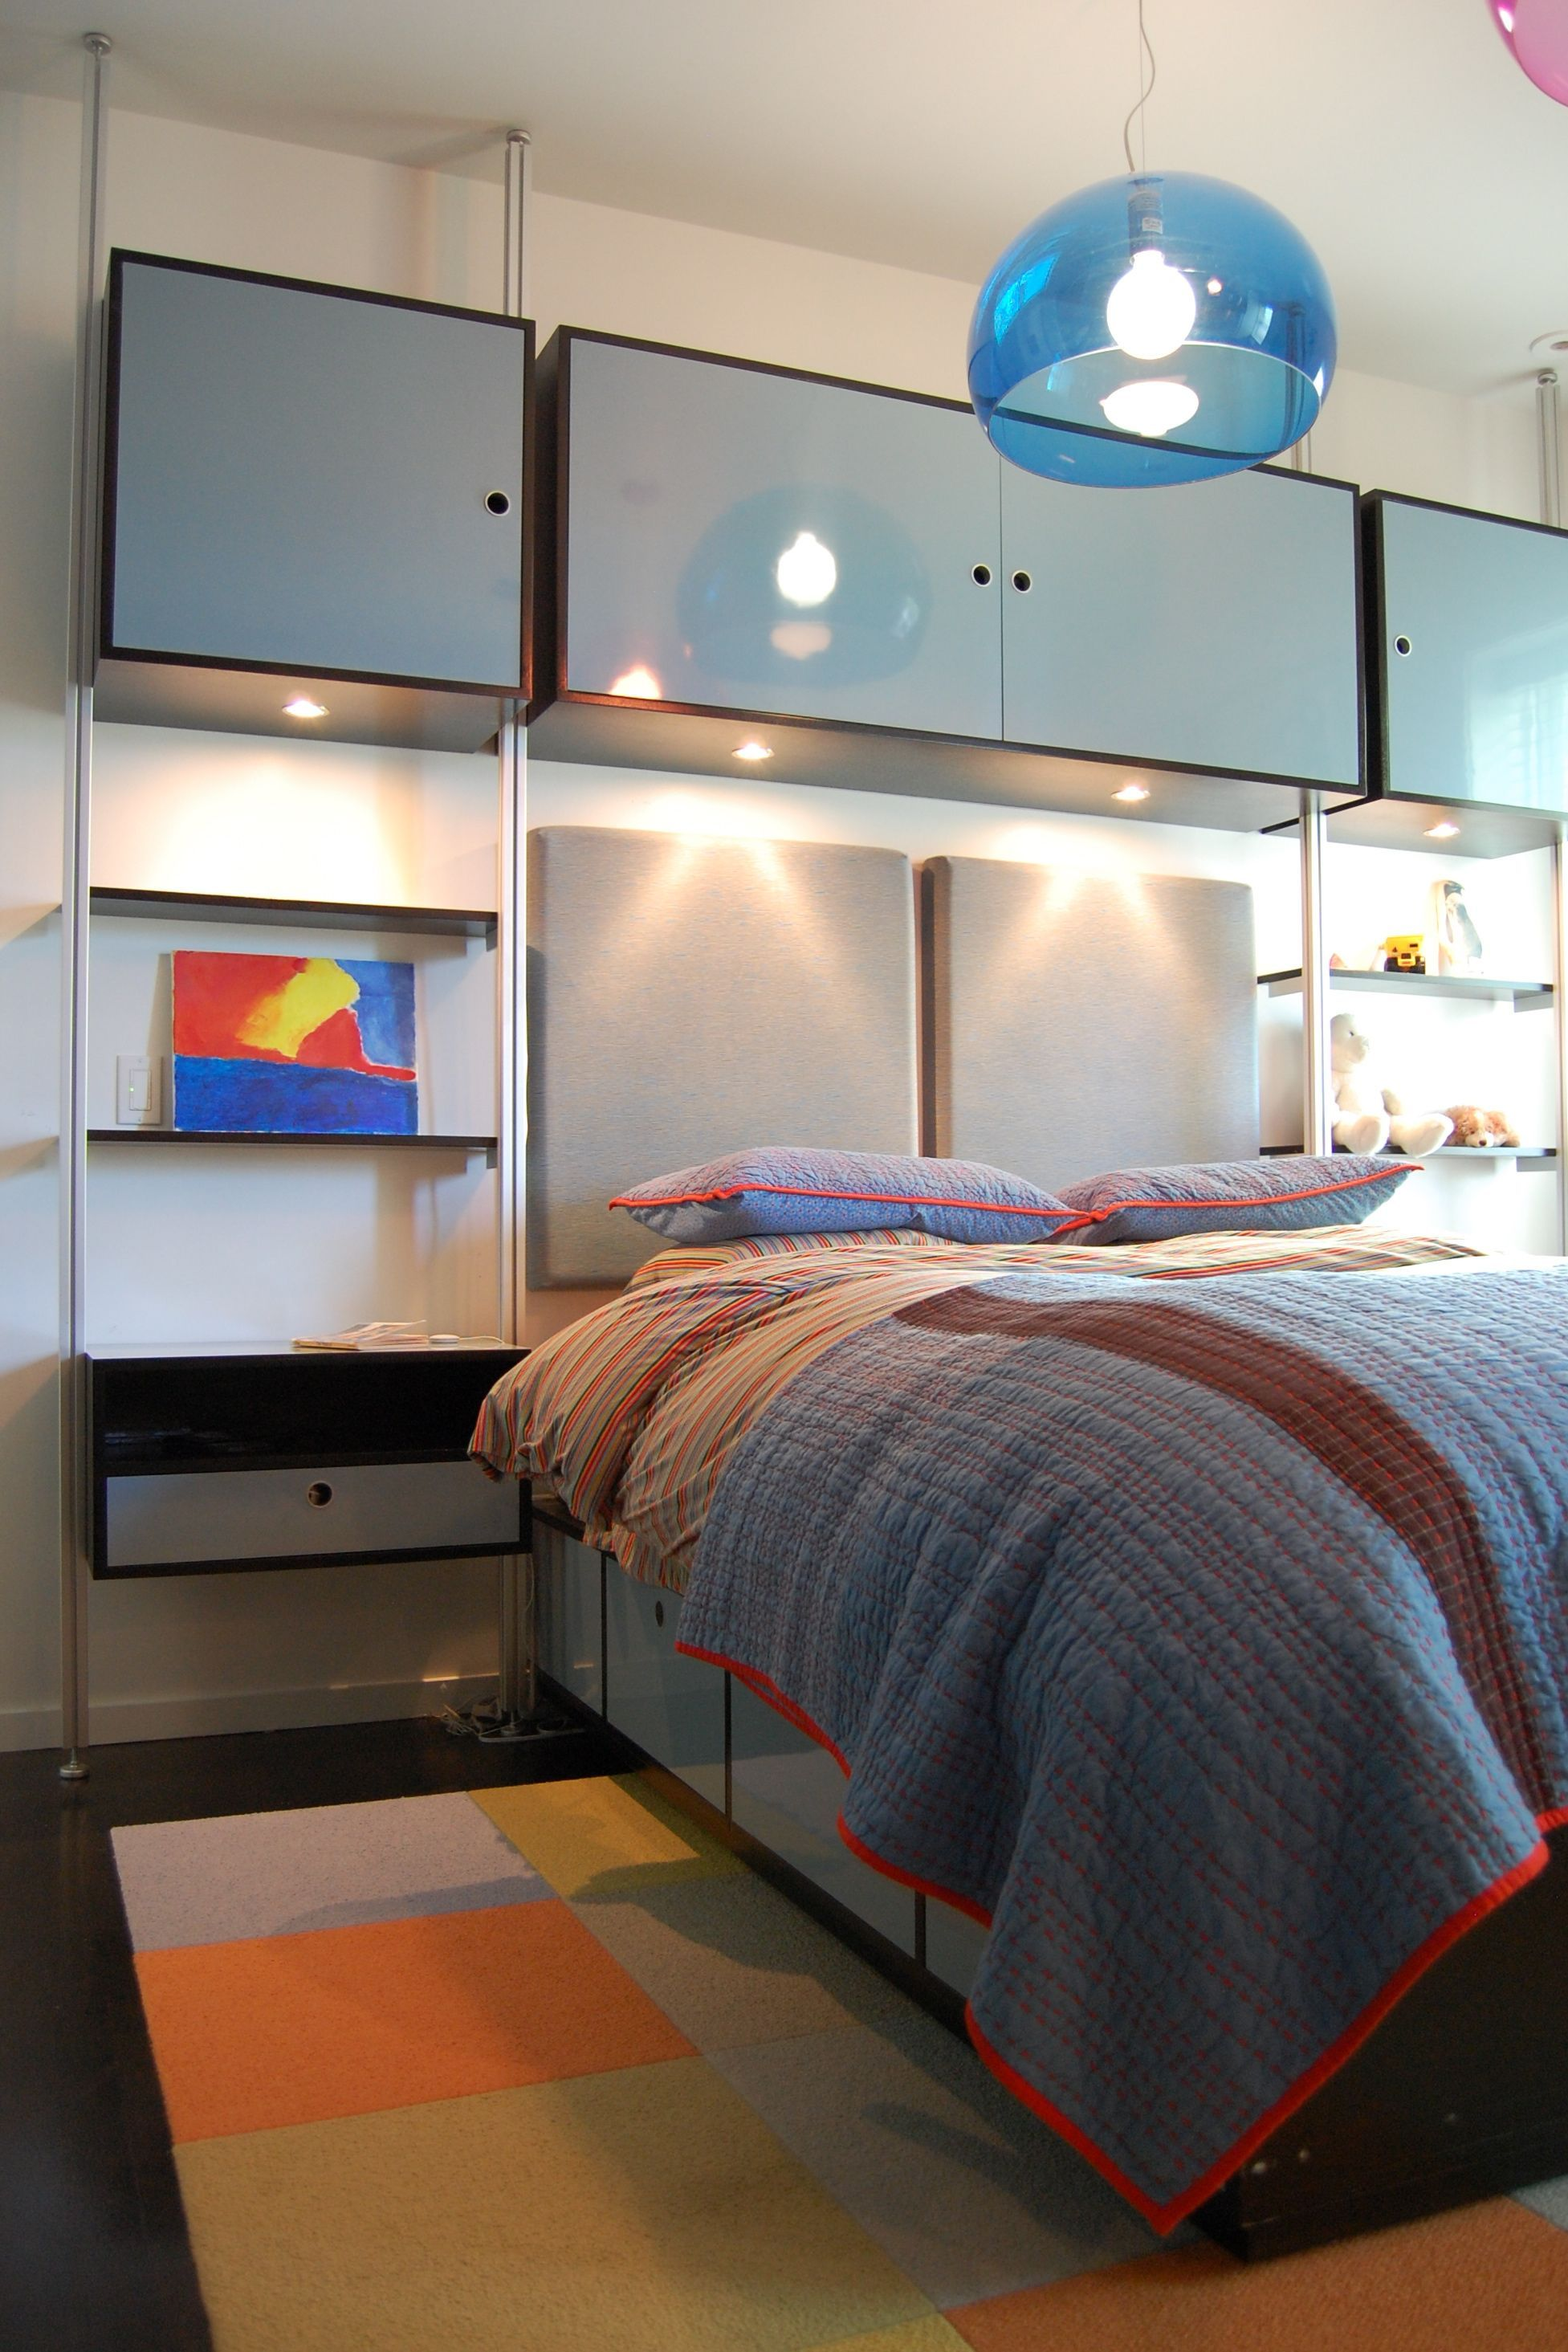 Cool Bedroom Ideas For 12 Year Old Boy Bedroom Design Cheap Bedroom Decor Boy Bedroom Design